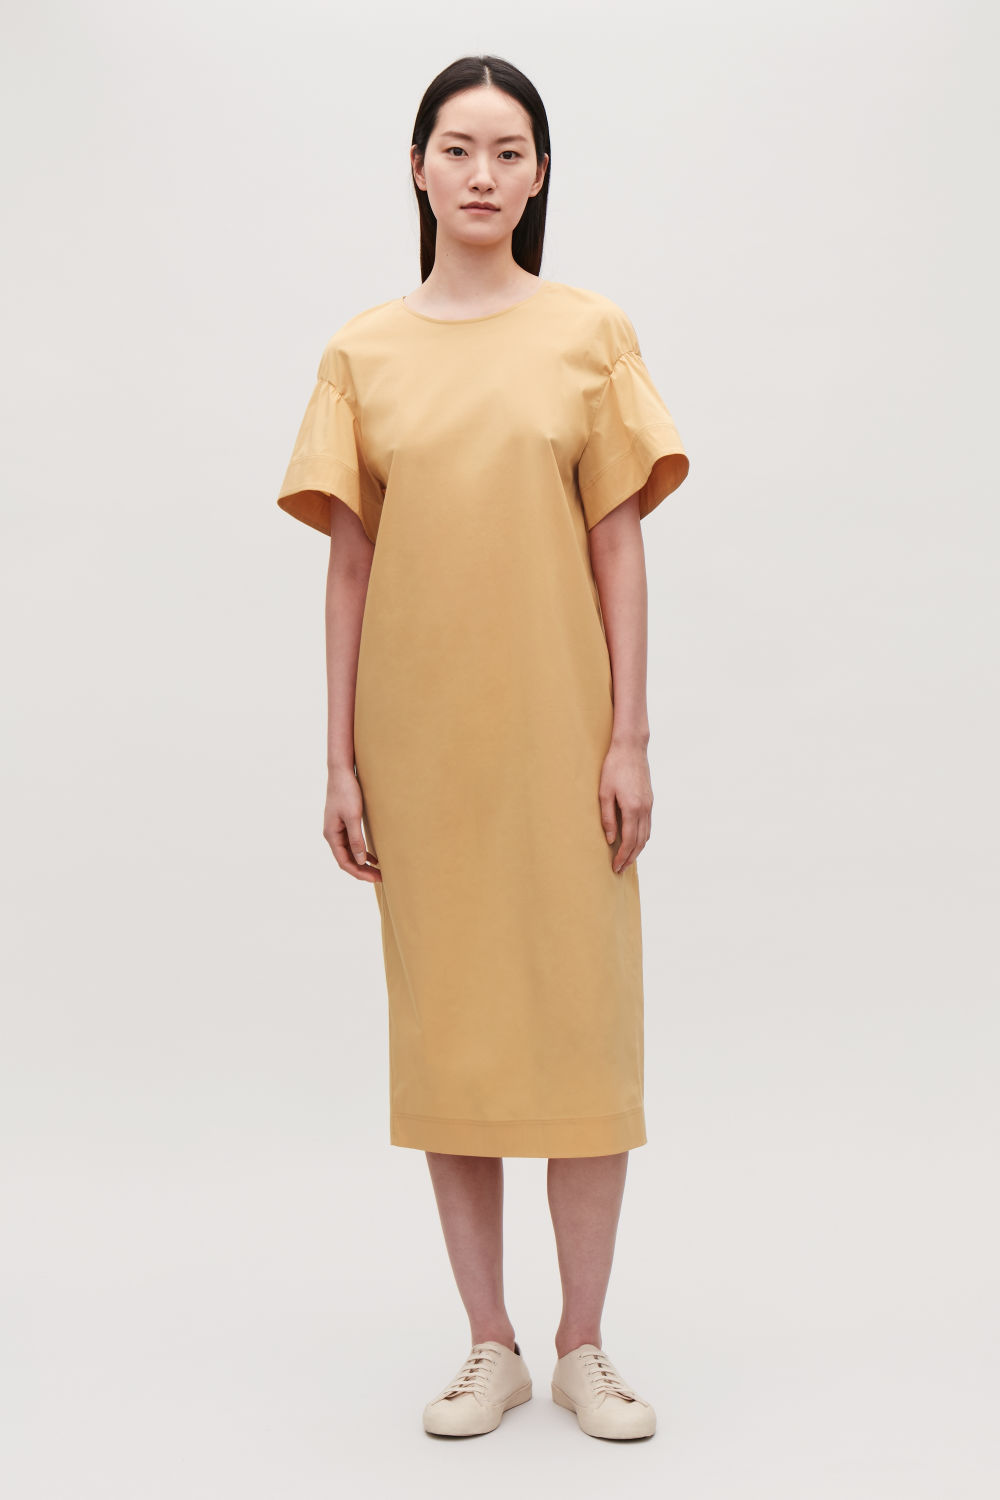 COS FLARE-SLEEVED POPLIN DRESS,Ochre yellow